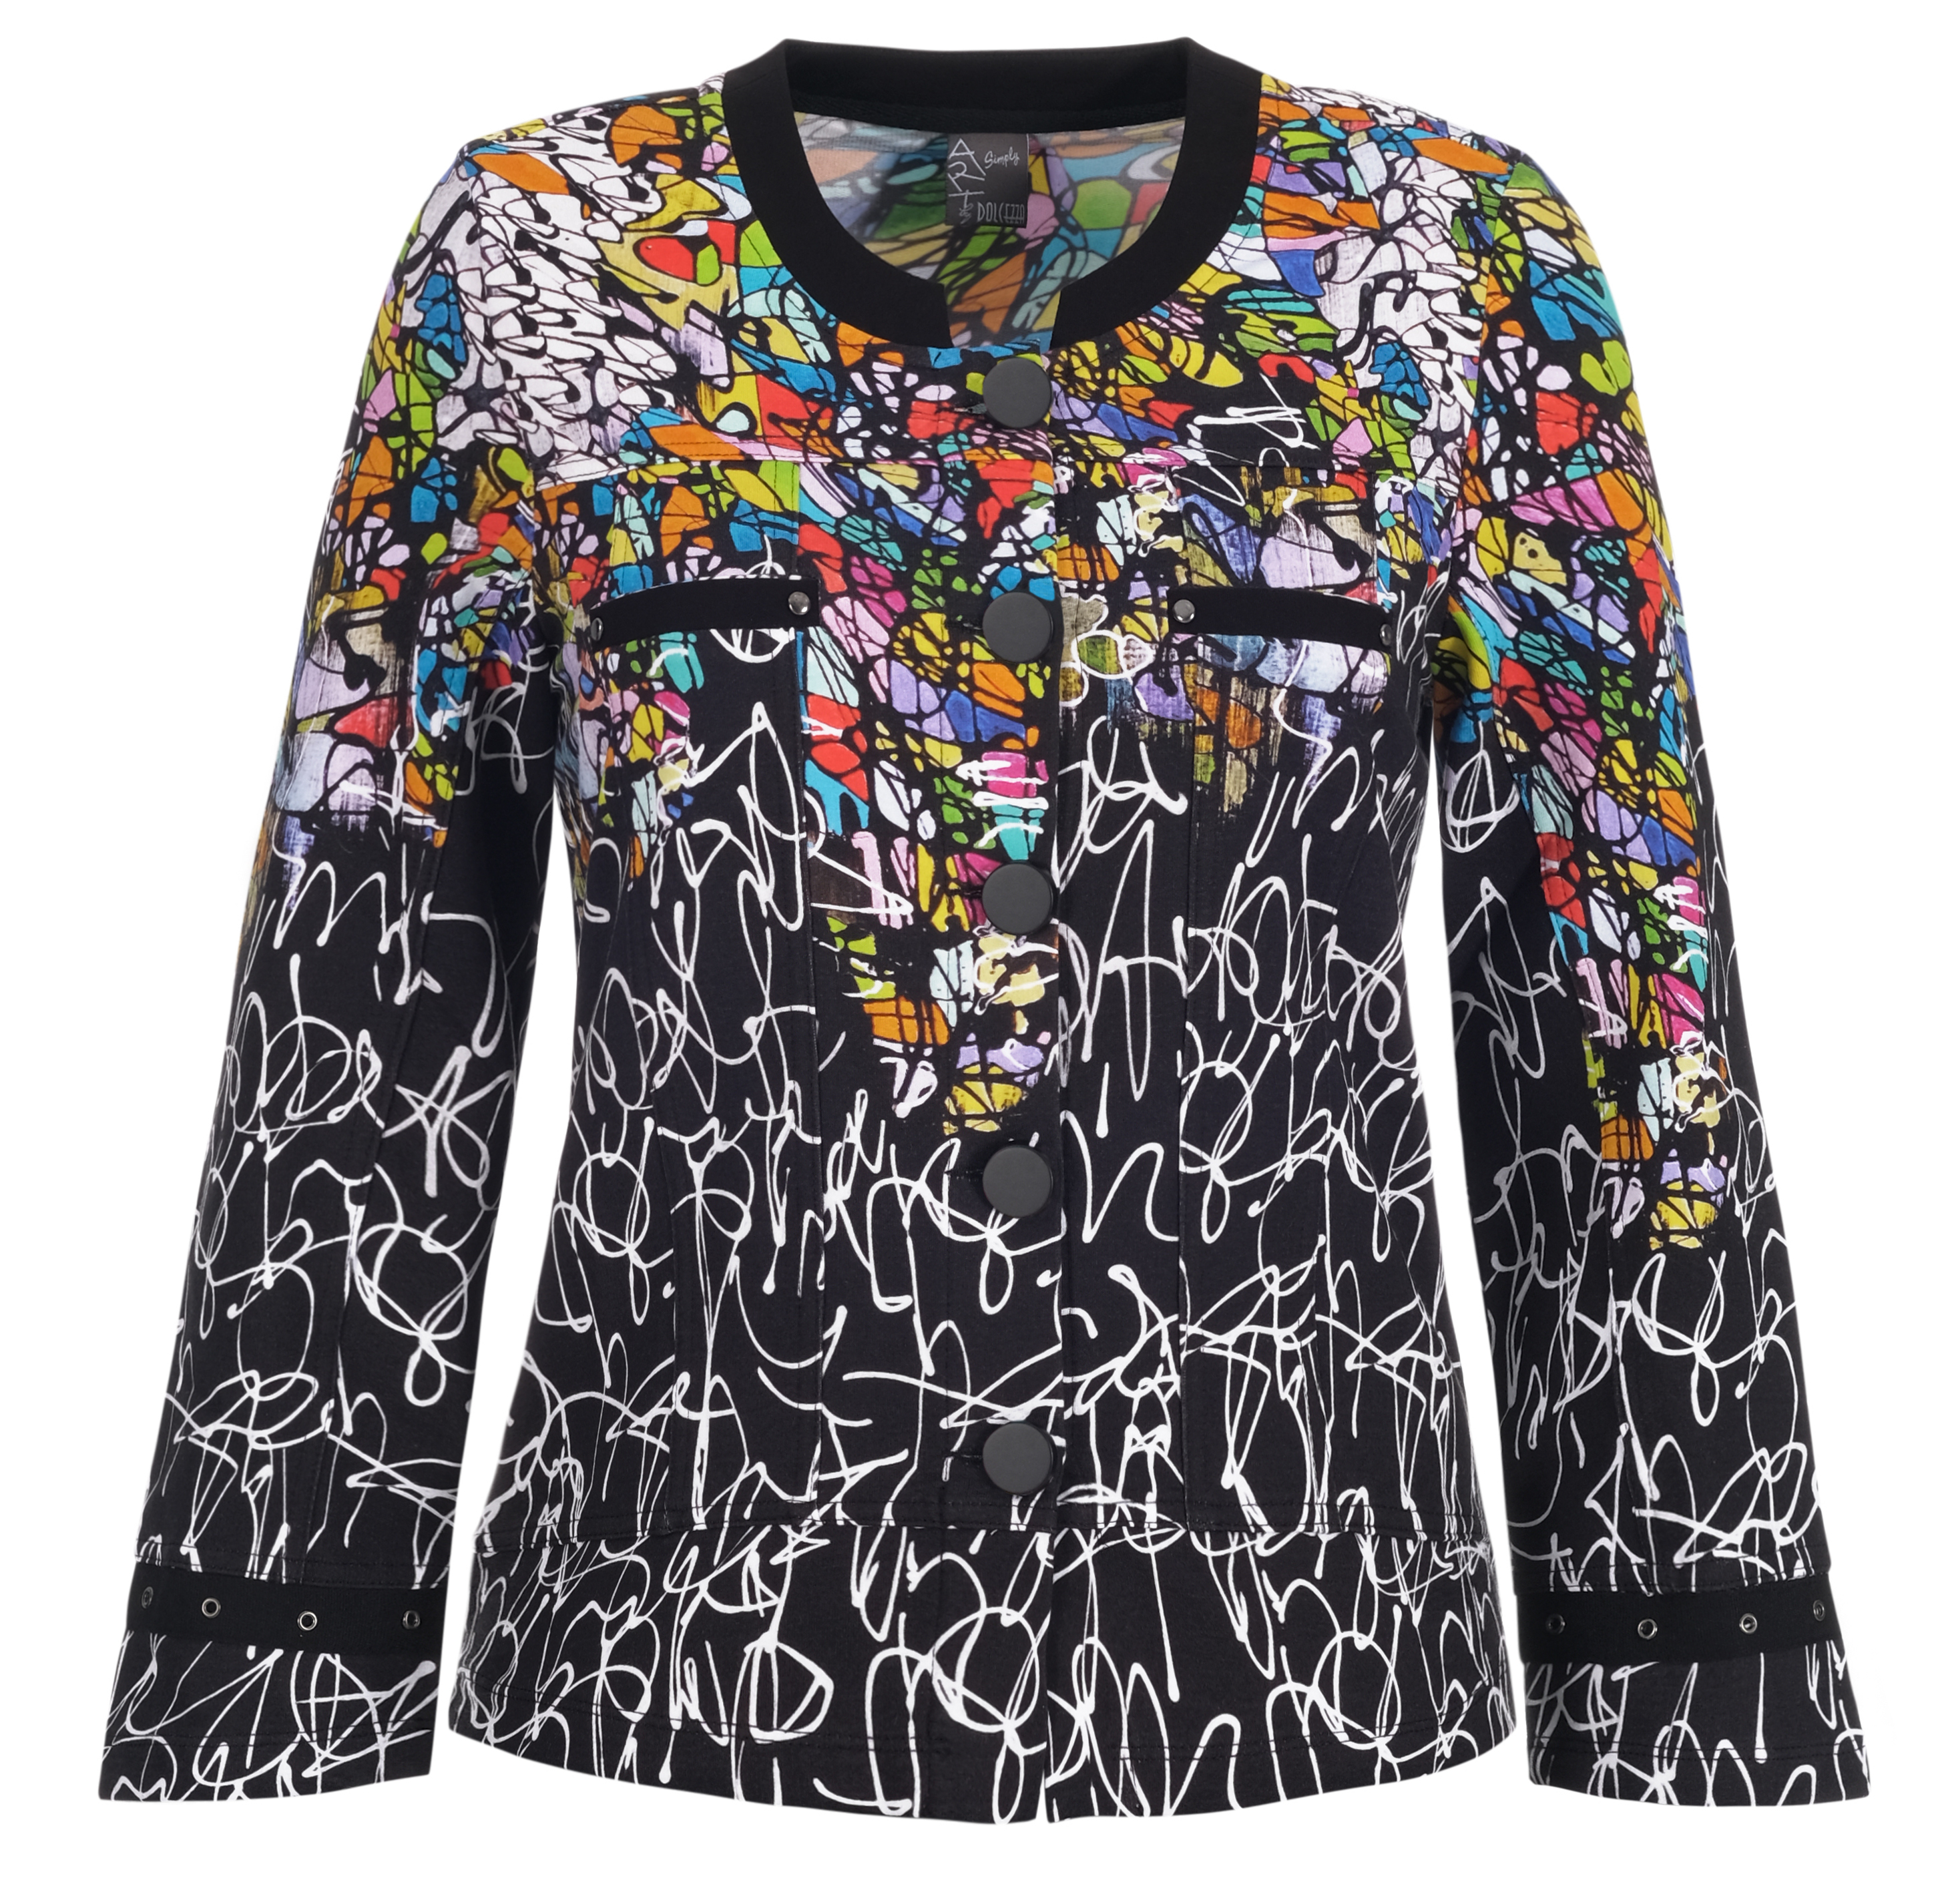 Simply Art Dolcezza: Black Board Abstract Art Cardigan (2 Left!) Dolcezza_SimplyArt_21648